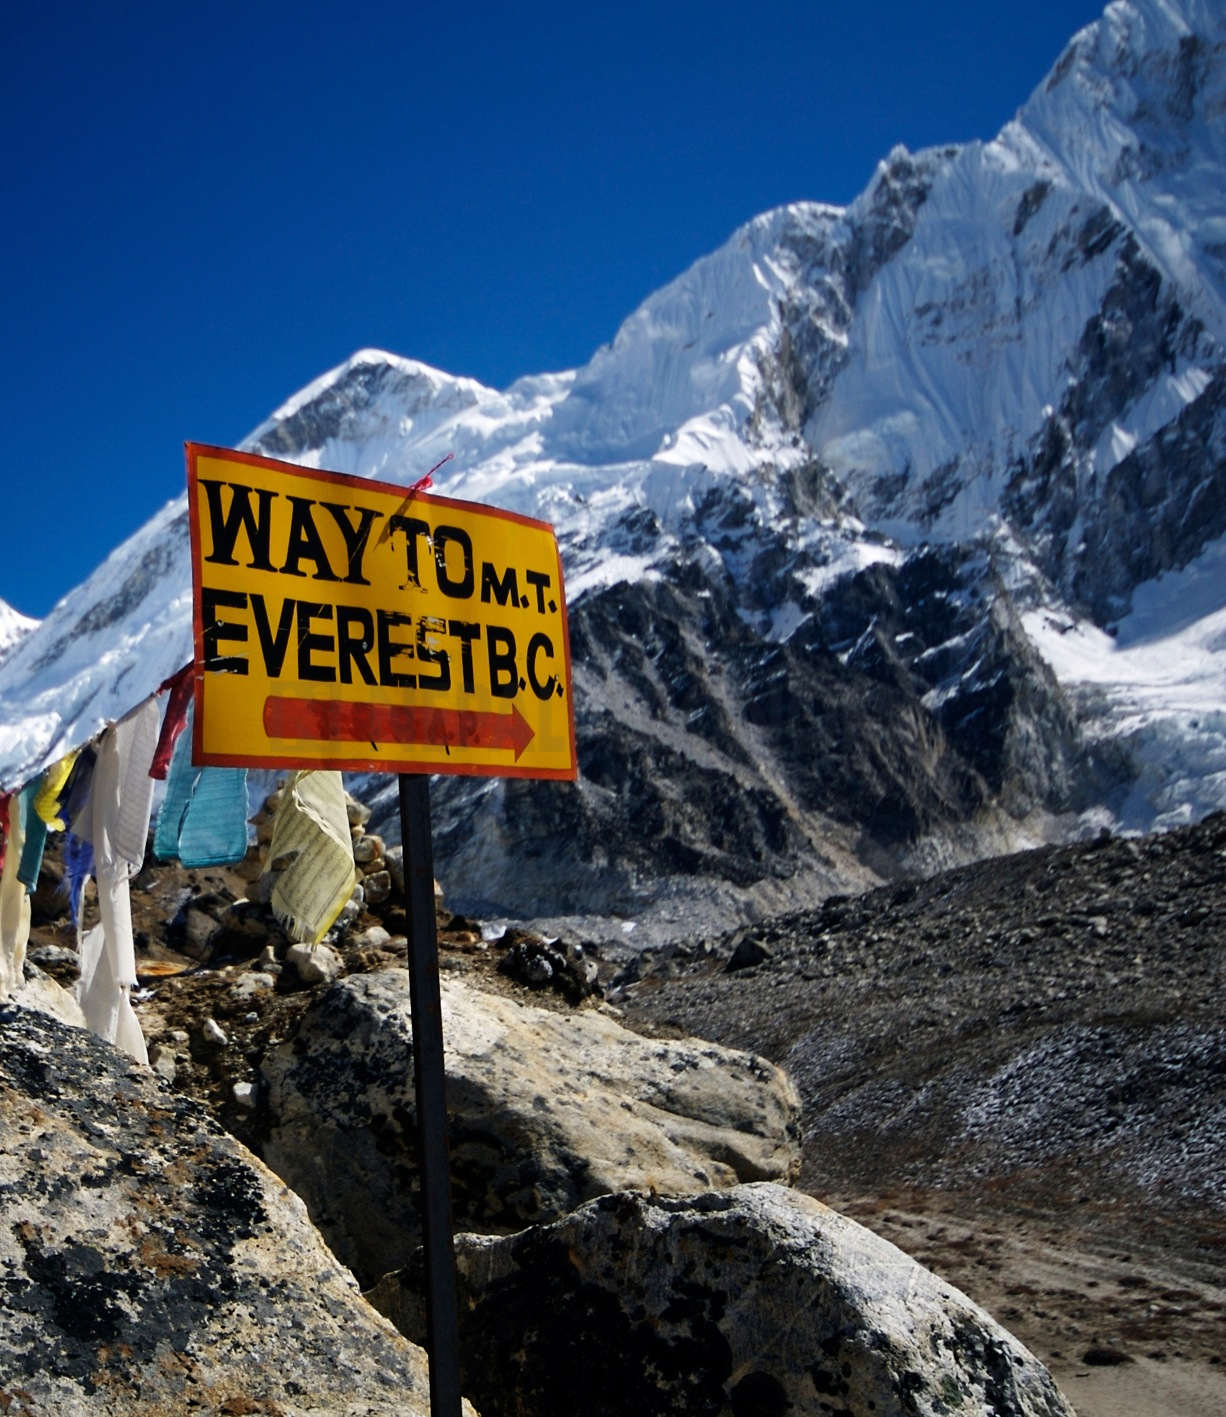 Everest climbers must collect rubbish or pay fine